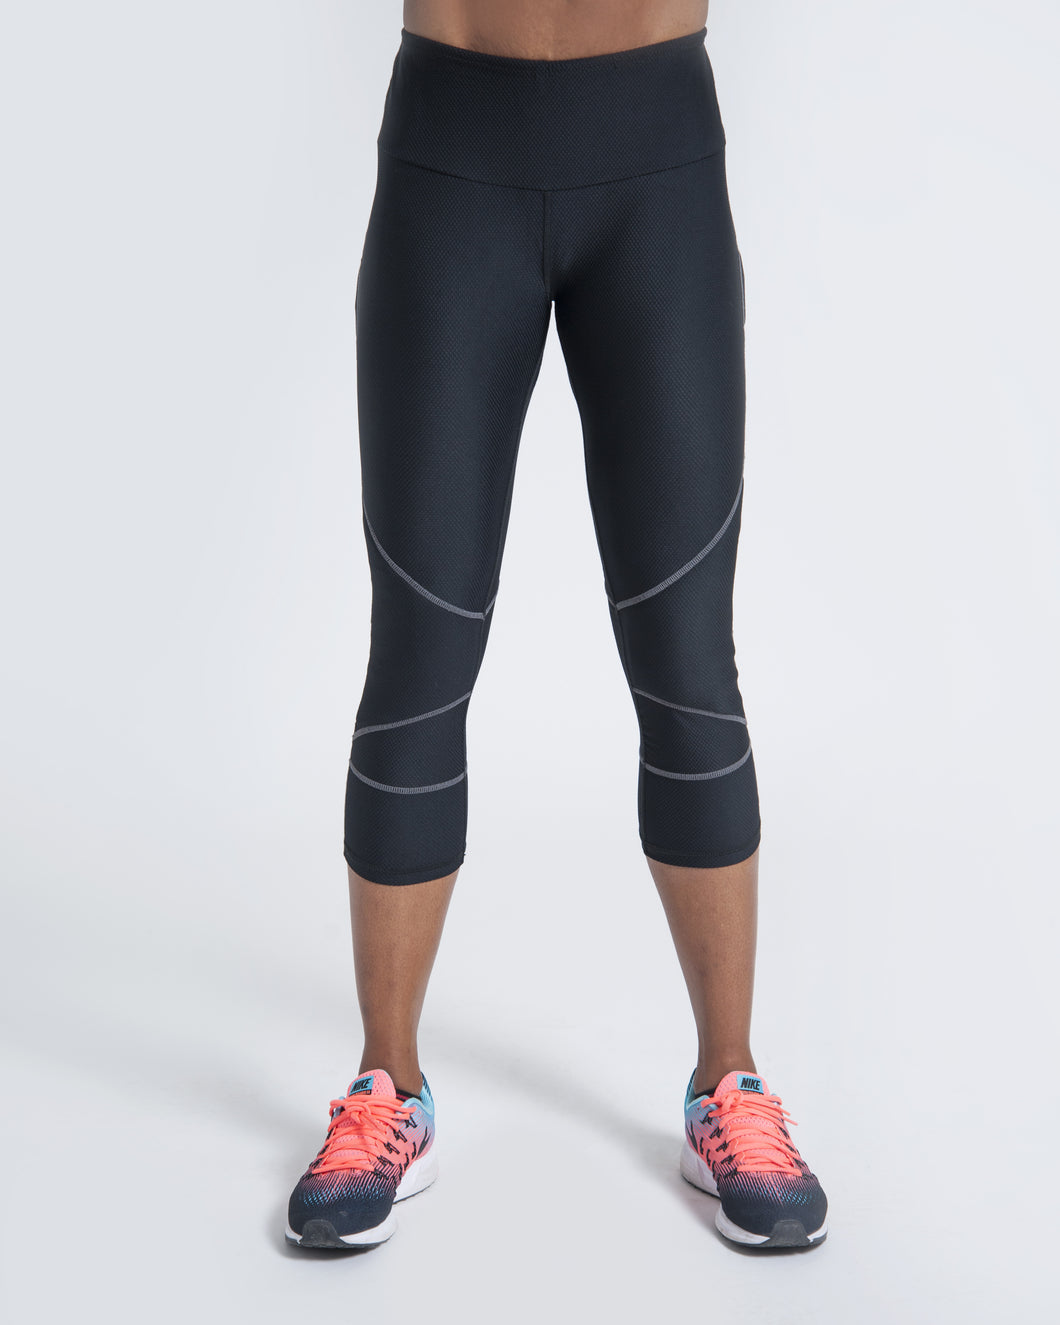 Active Leisure Legging - Black w/ gray stitching and textured knit accents